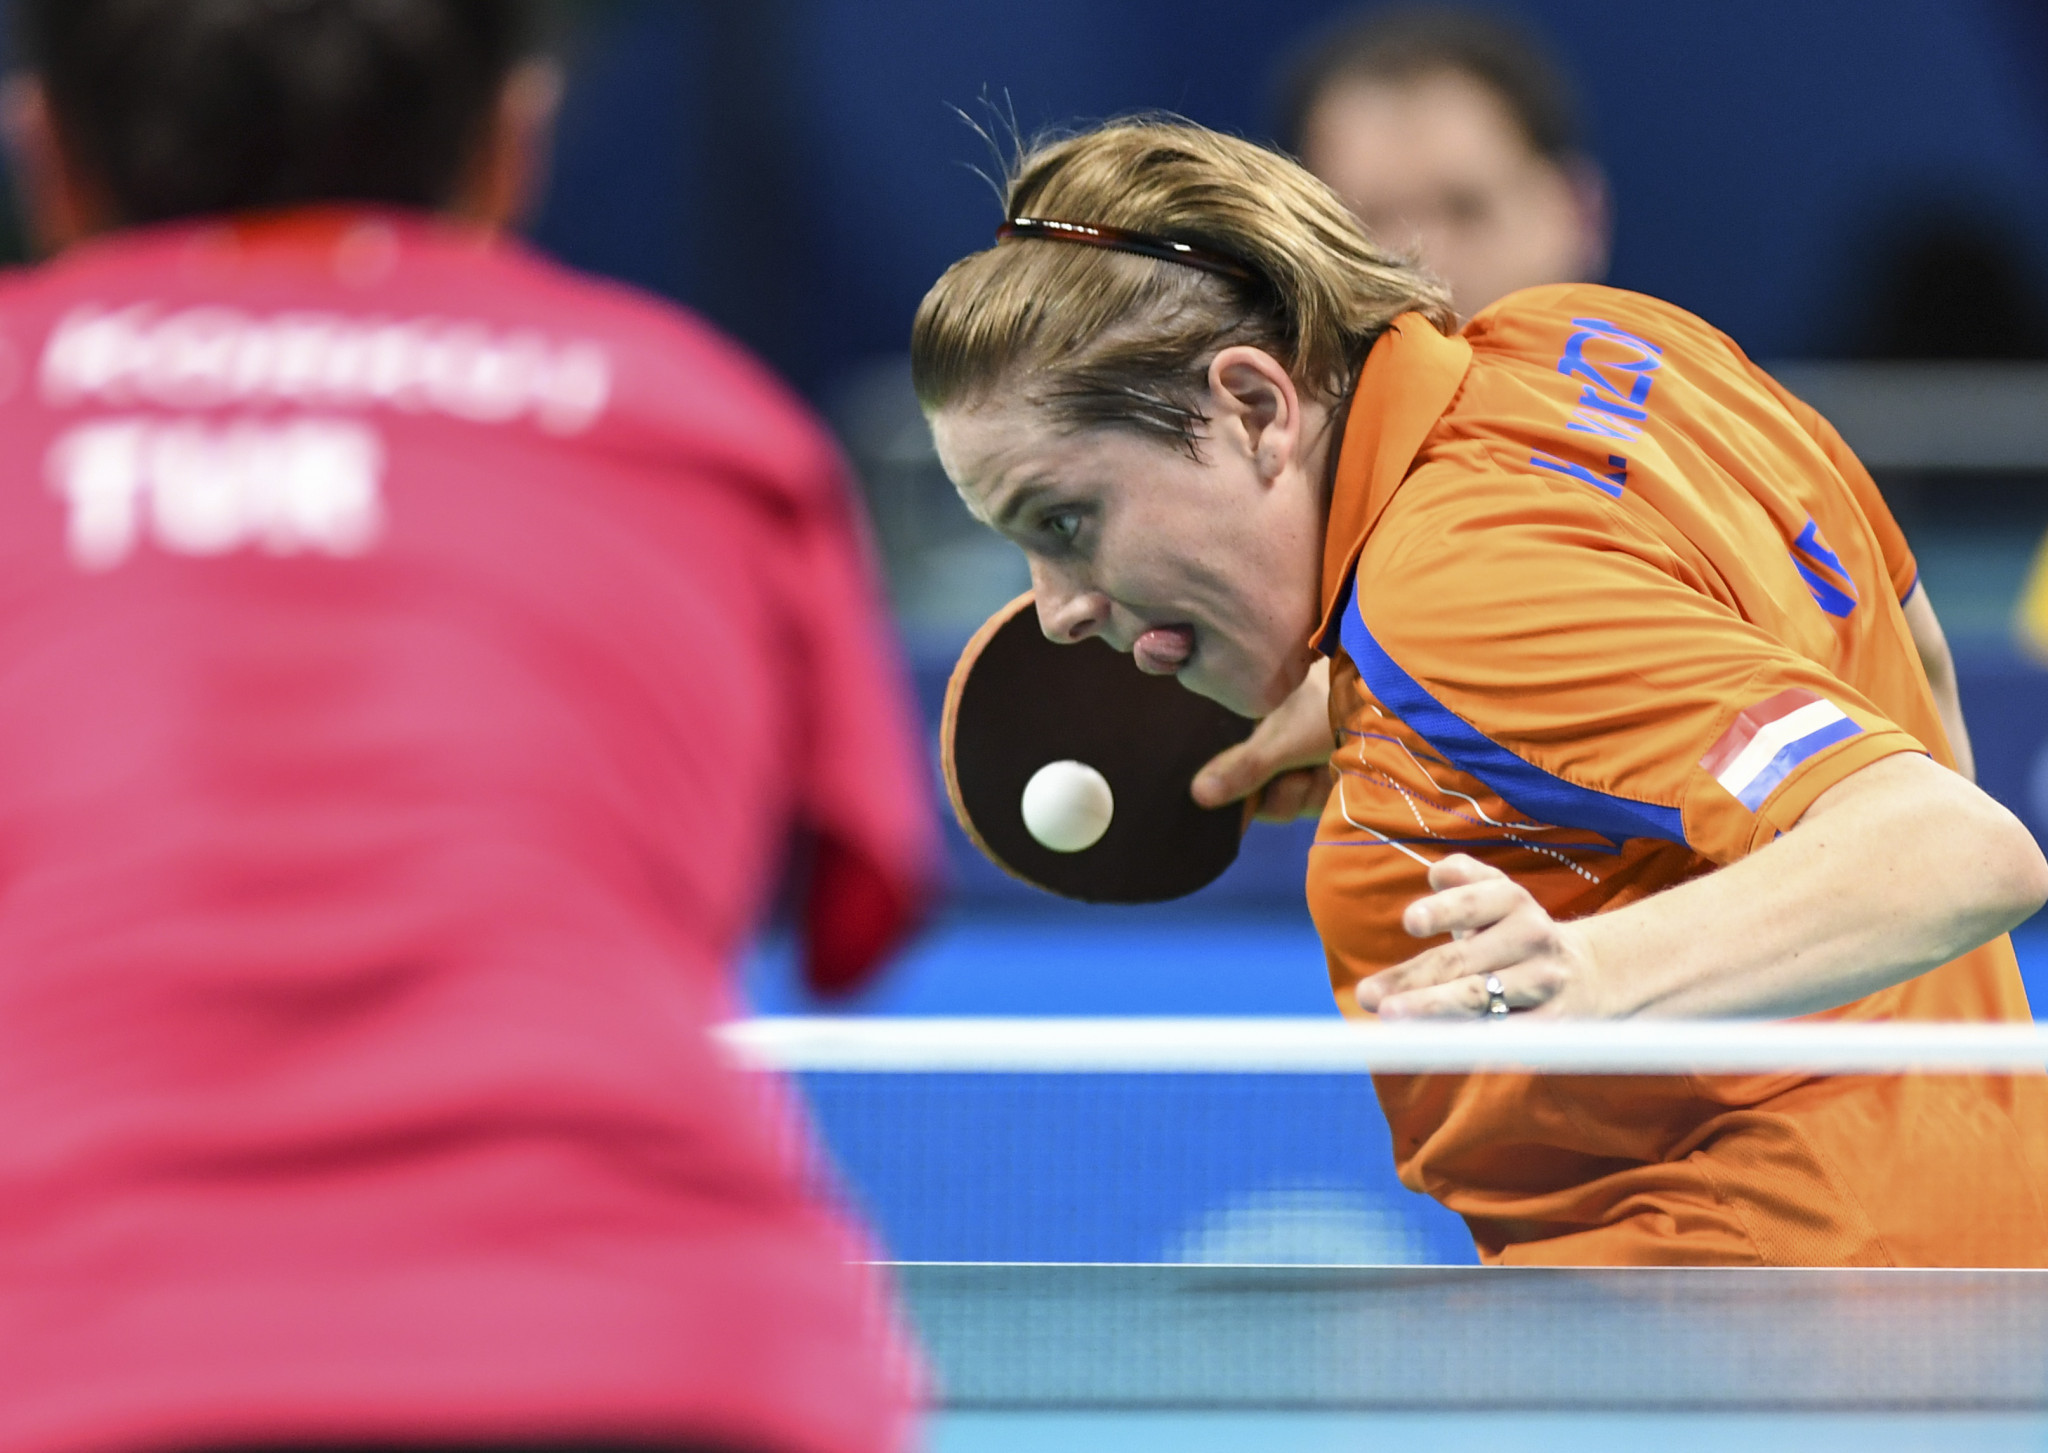 Another Paralympic champion, Kelly Van Zon of The Netherlands, was knocked out in the semi-finals ©Getty Images